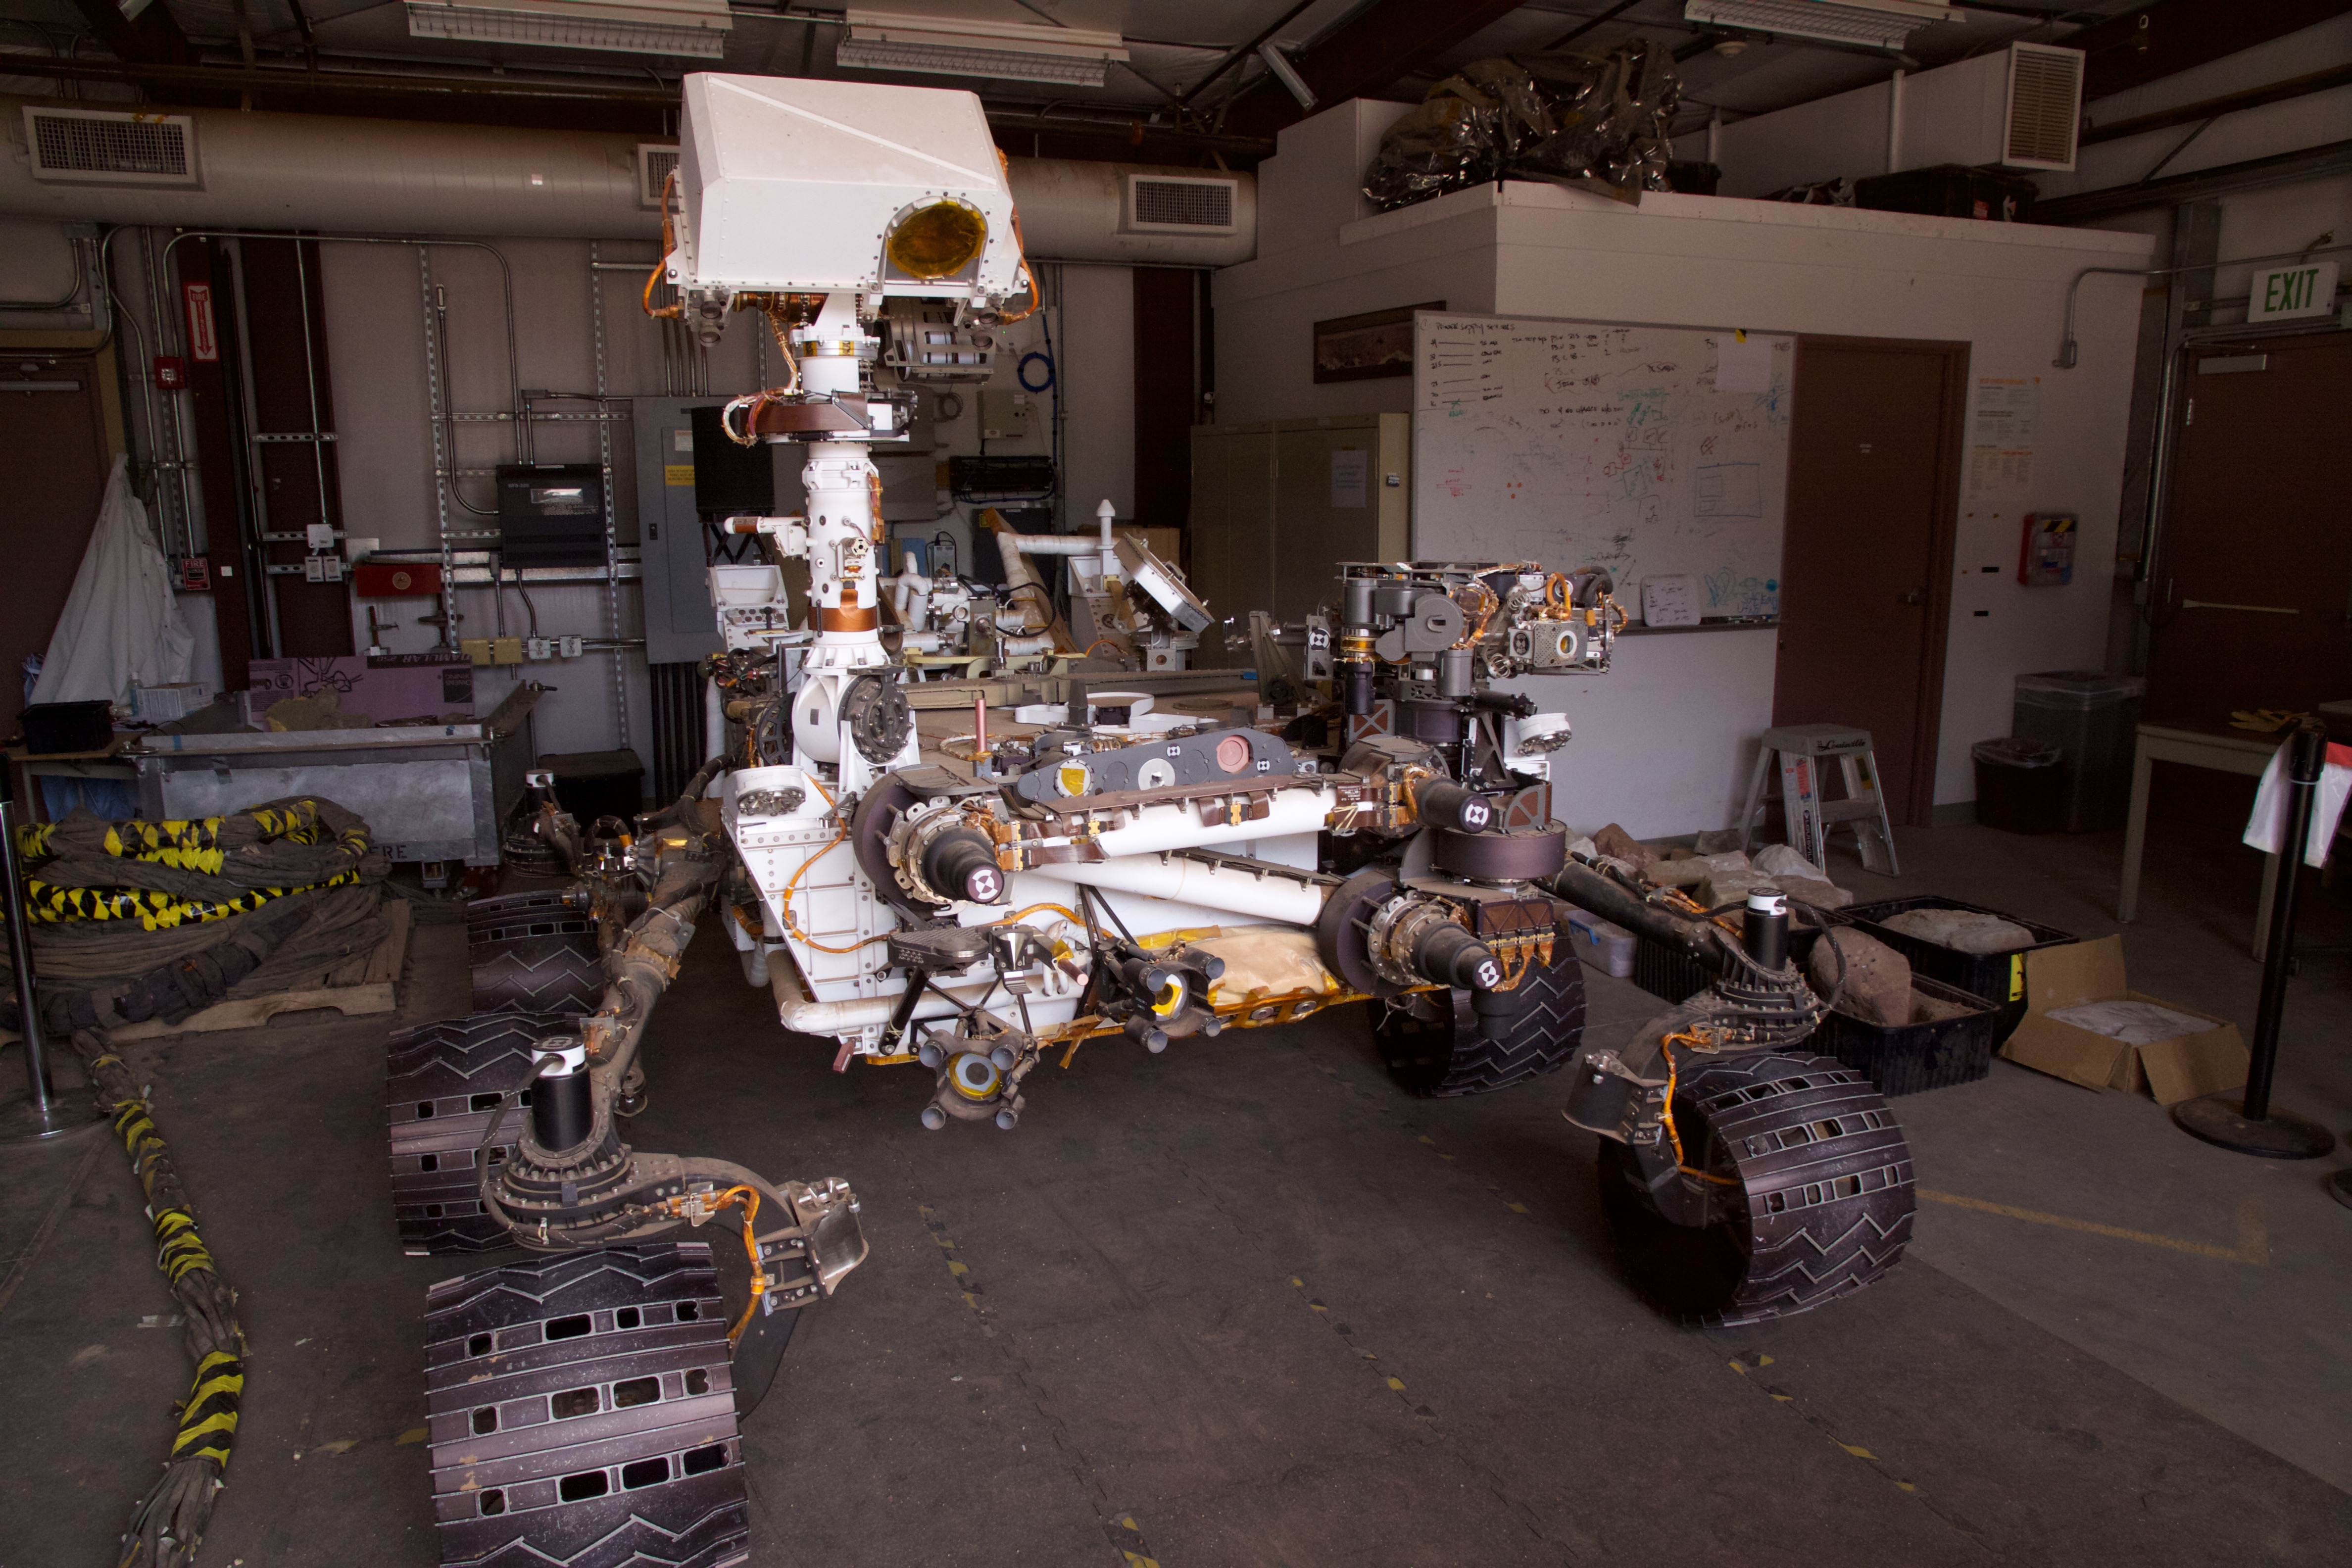 An exact copy of the rover currently on Mars is housed at the Jet Propulsion Laboratory (JPL, associated with Caltech). We got a tour of the facilities and saw the rover as part of our program at Caltech.